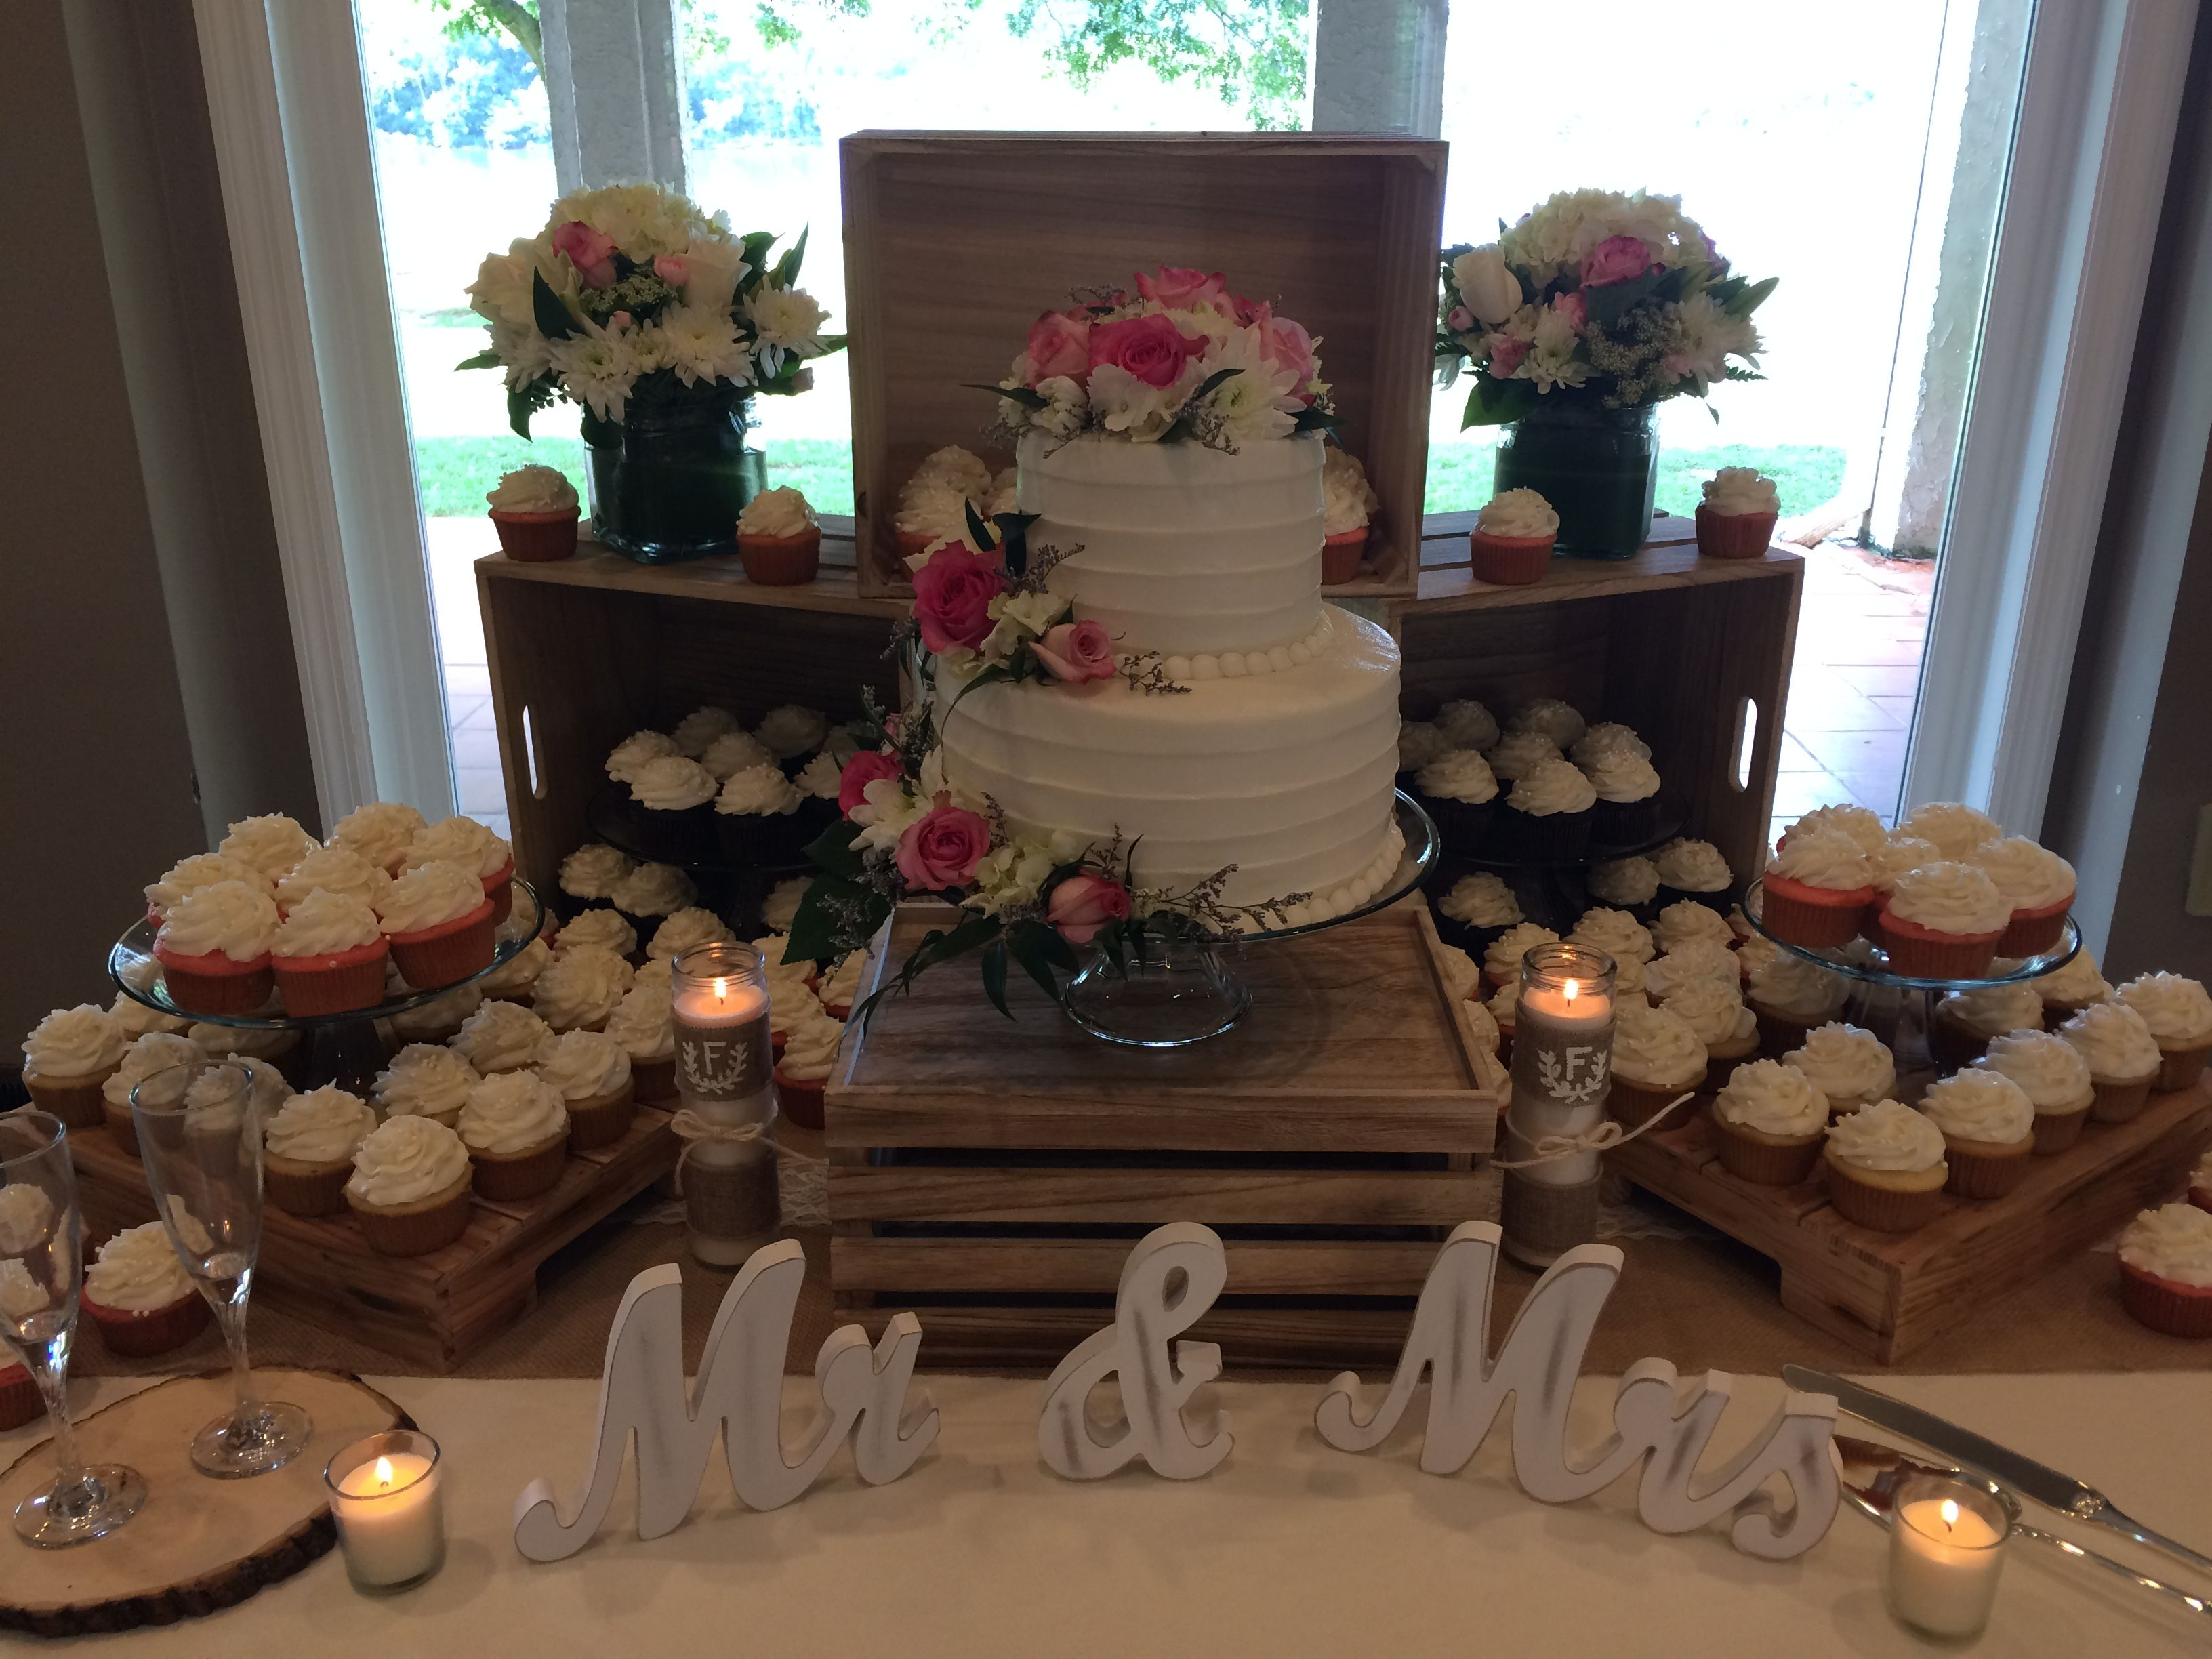 Wedding Cupcake Display With Images Wedding Cupcake Display